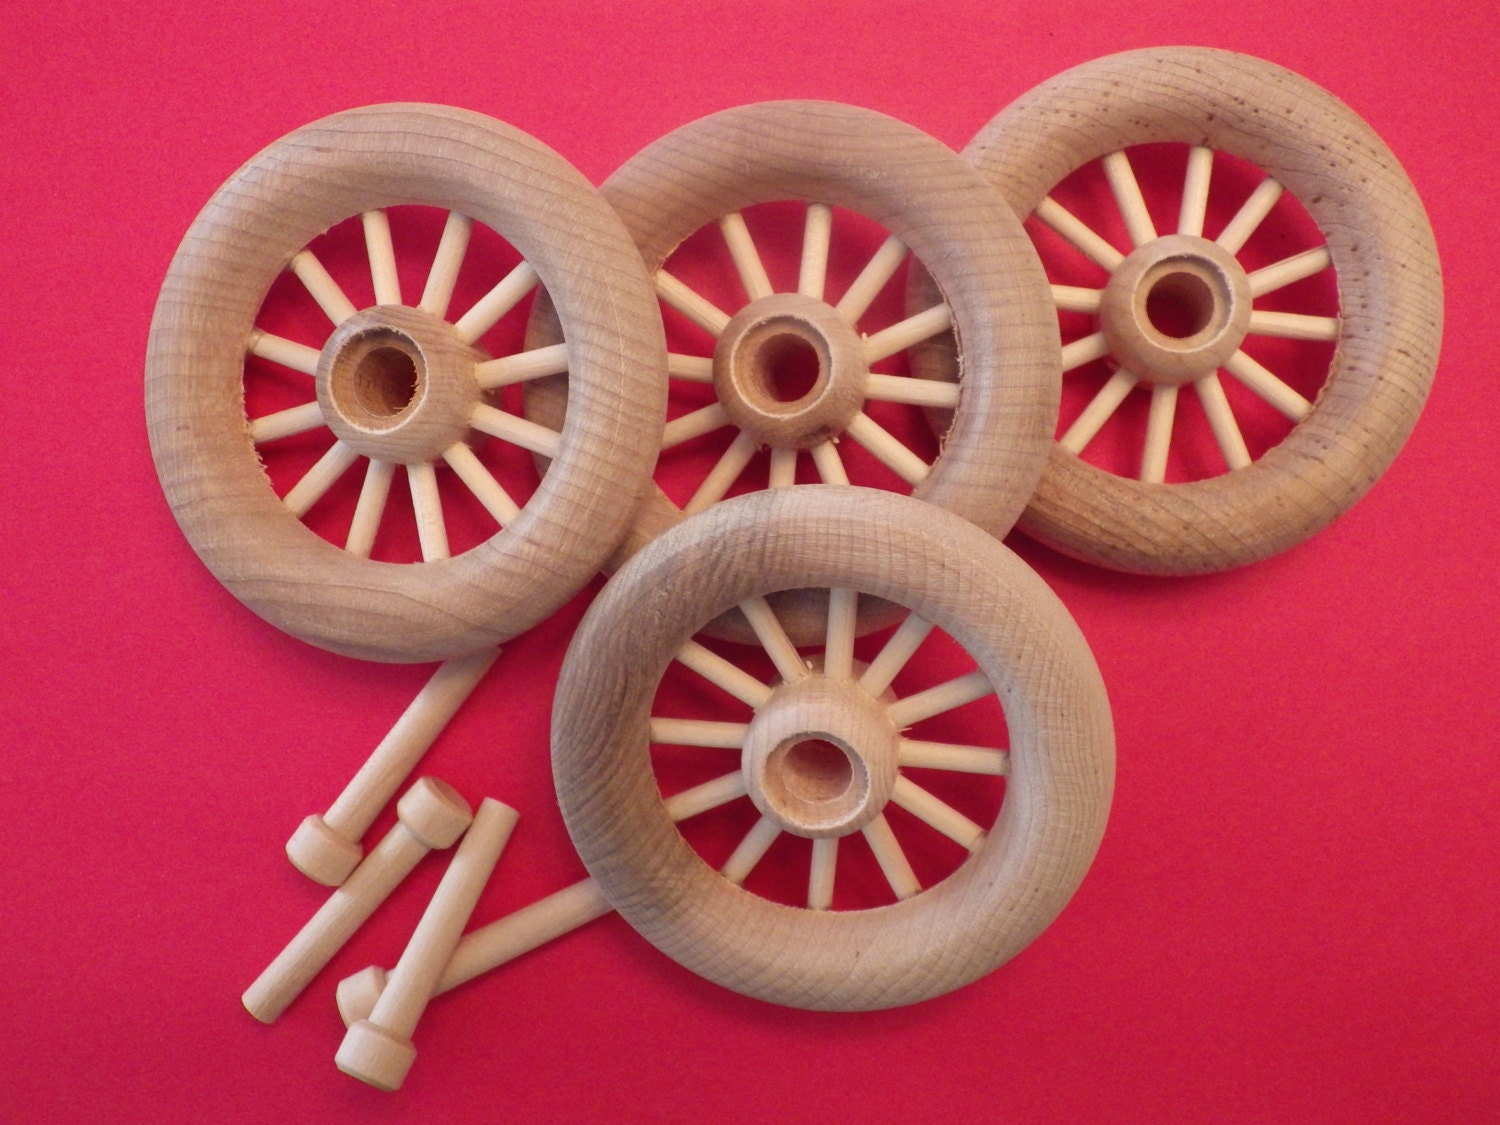 4 Wood Spoke Toy Wheels with Axle Peg